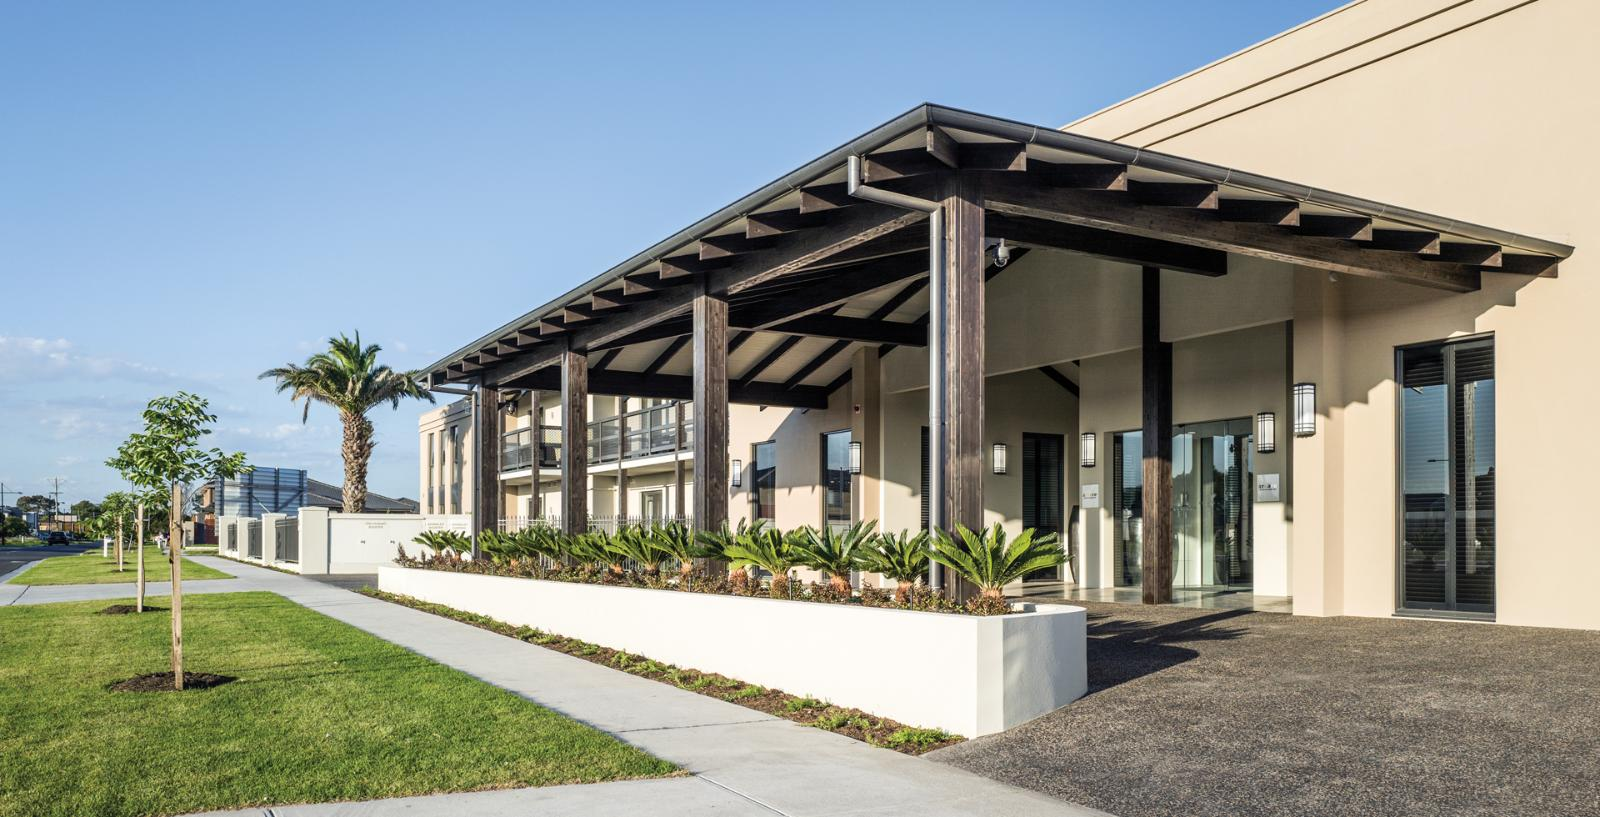 Arcare aged care keysborough exterior 01